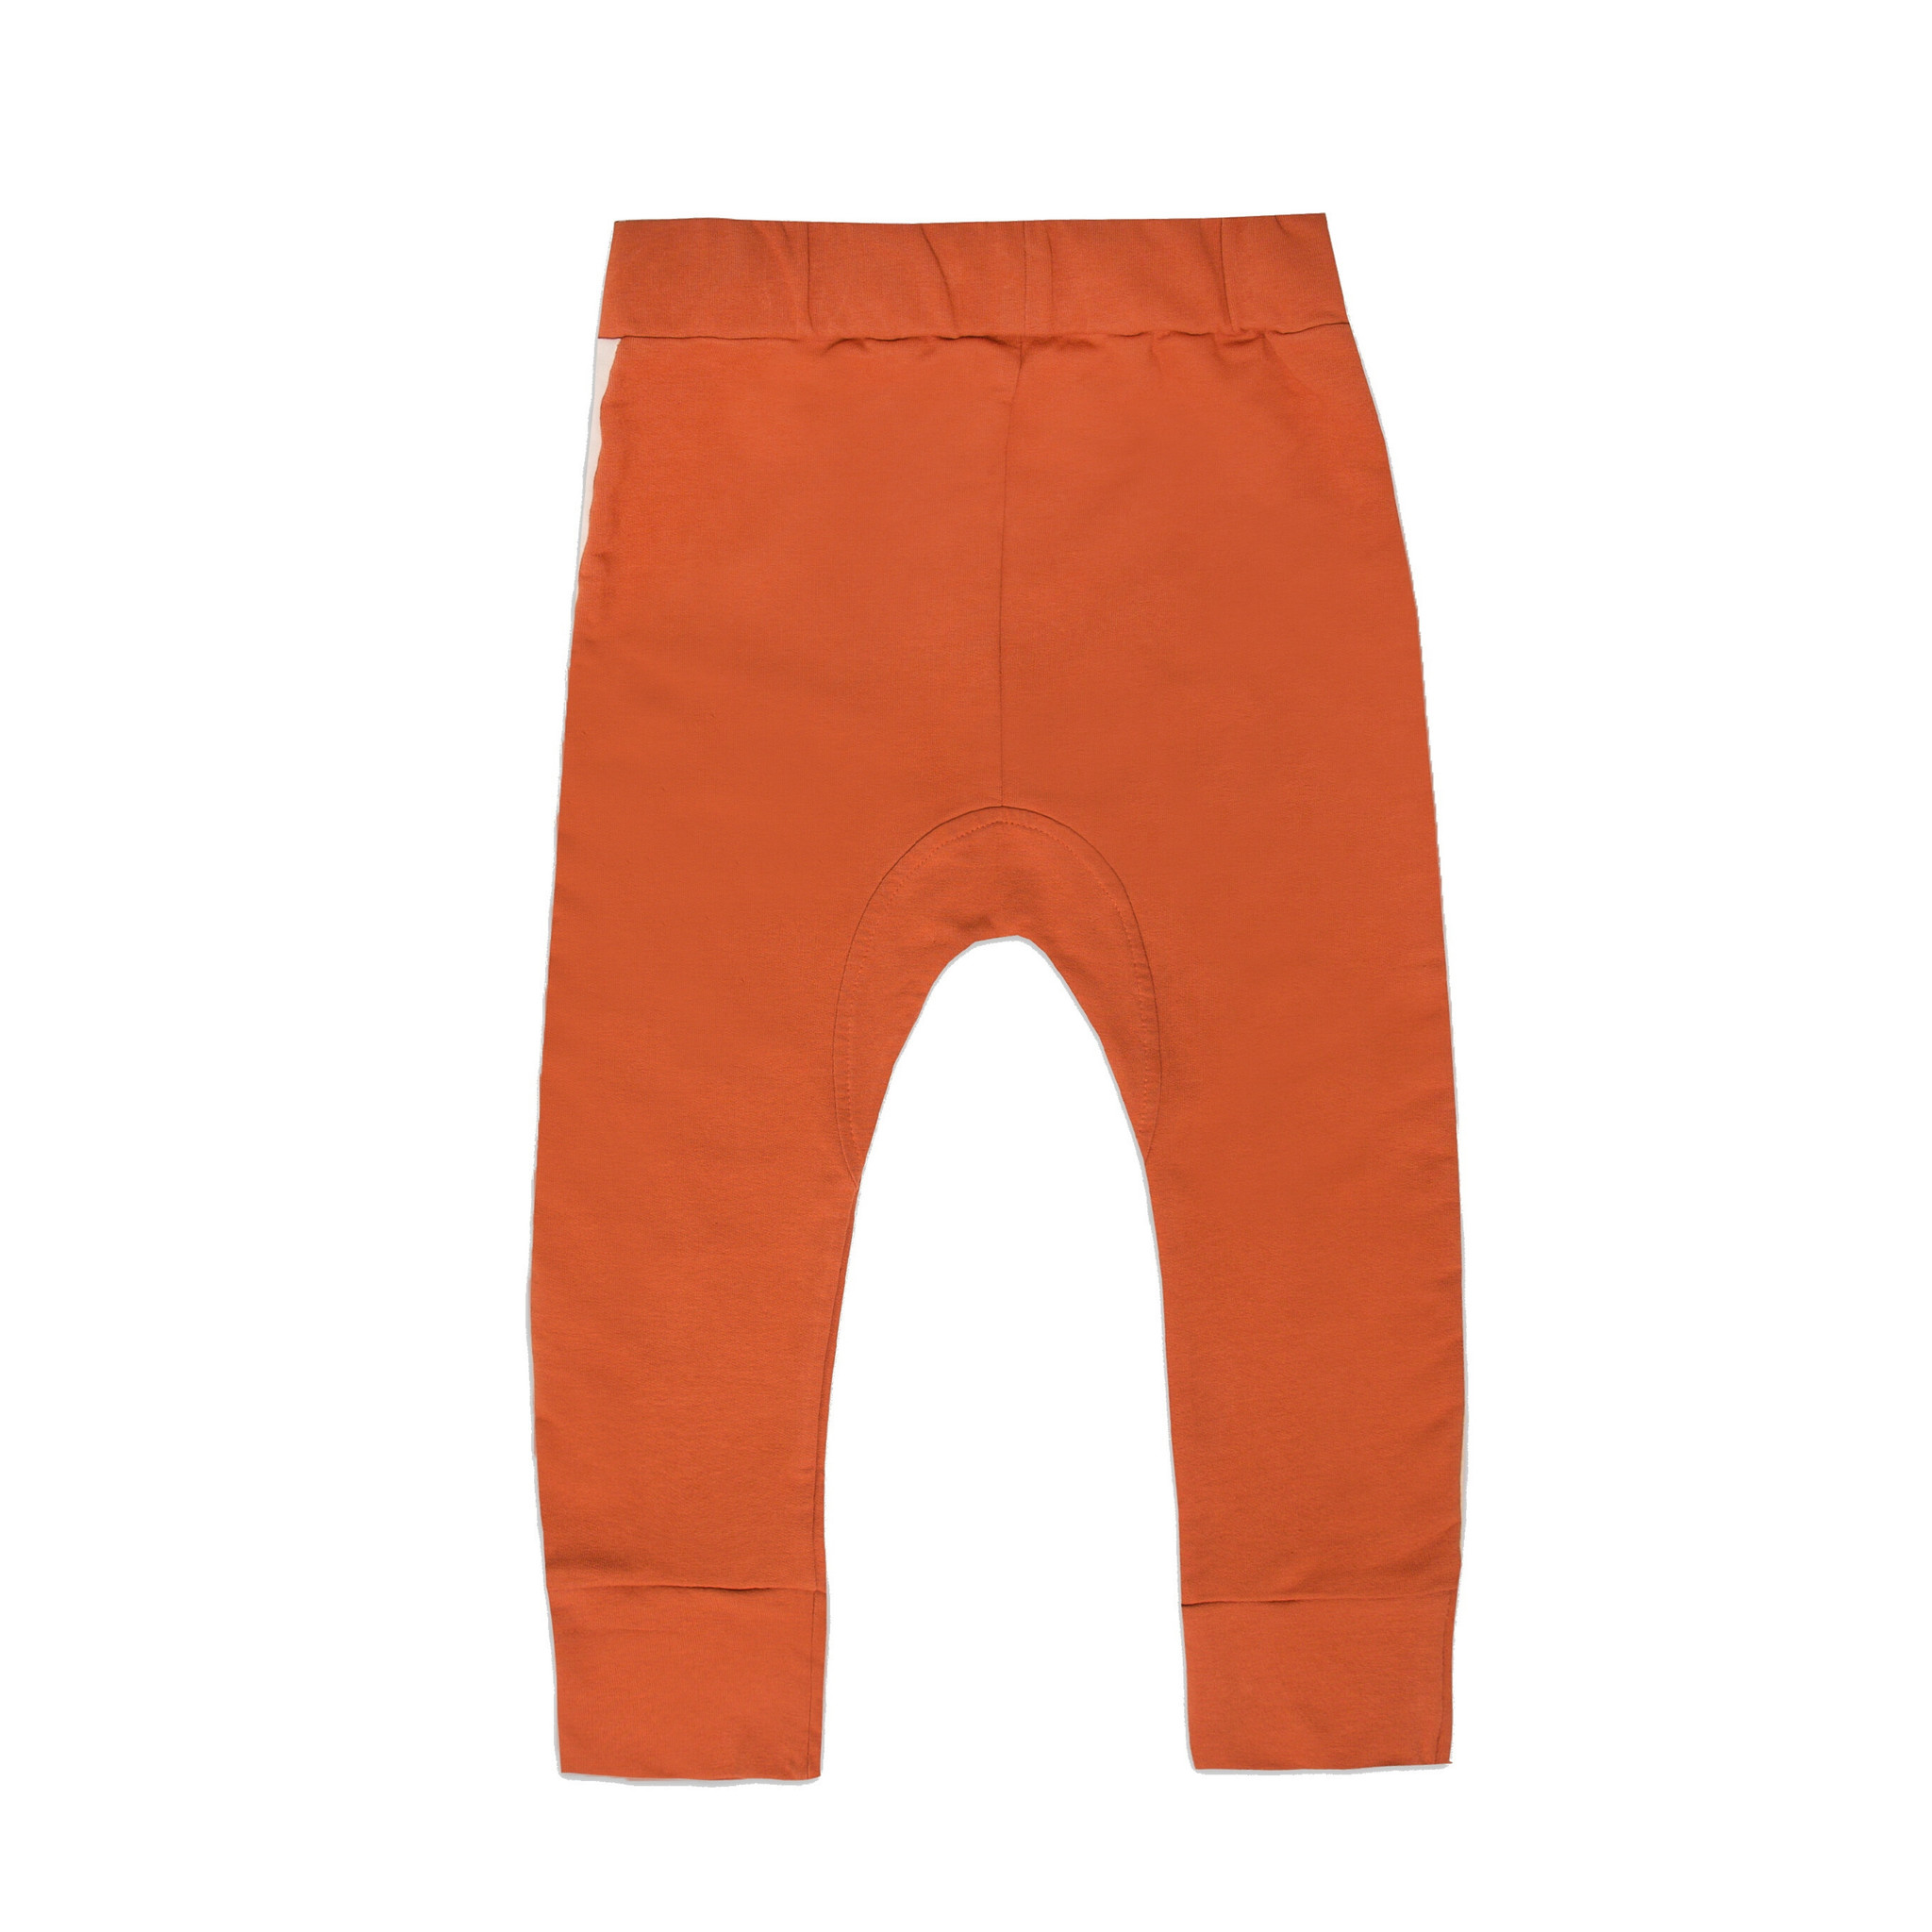 Minikid ORANGE RED JOGGING PANTS | PANTS WITH KANGAROO POCKET | MINIKID